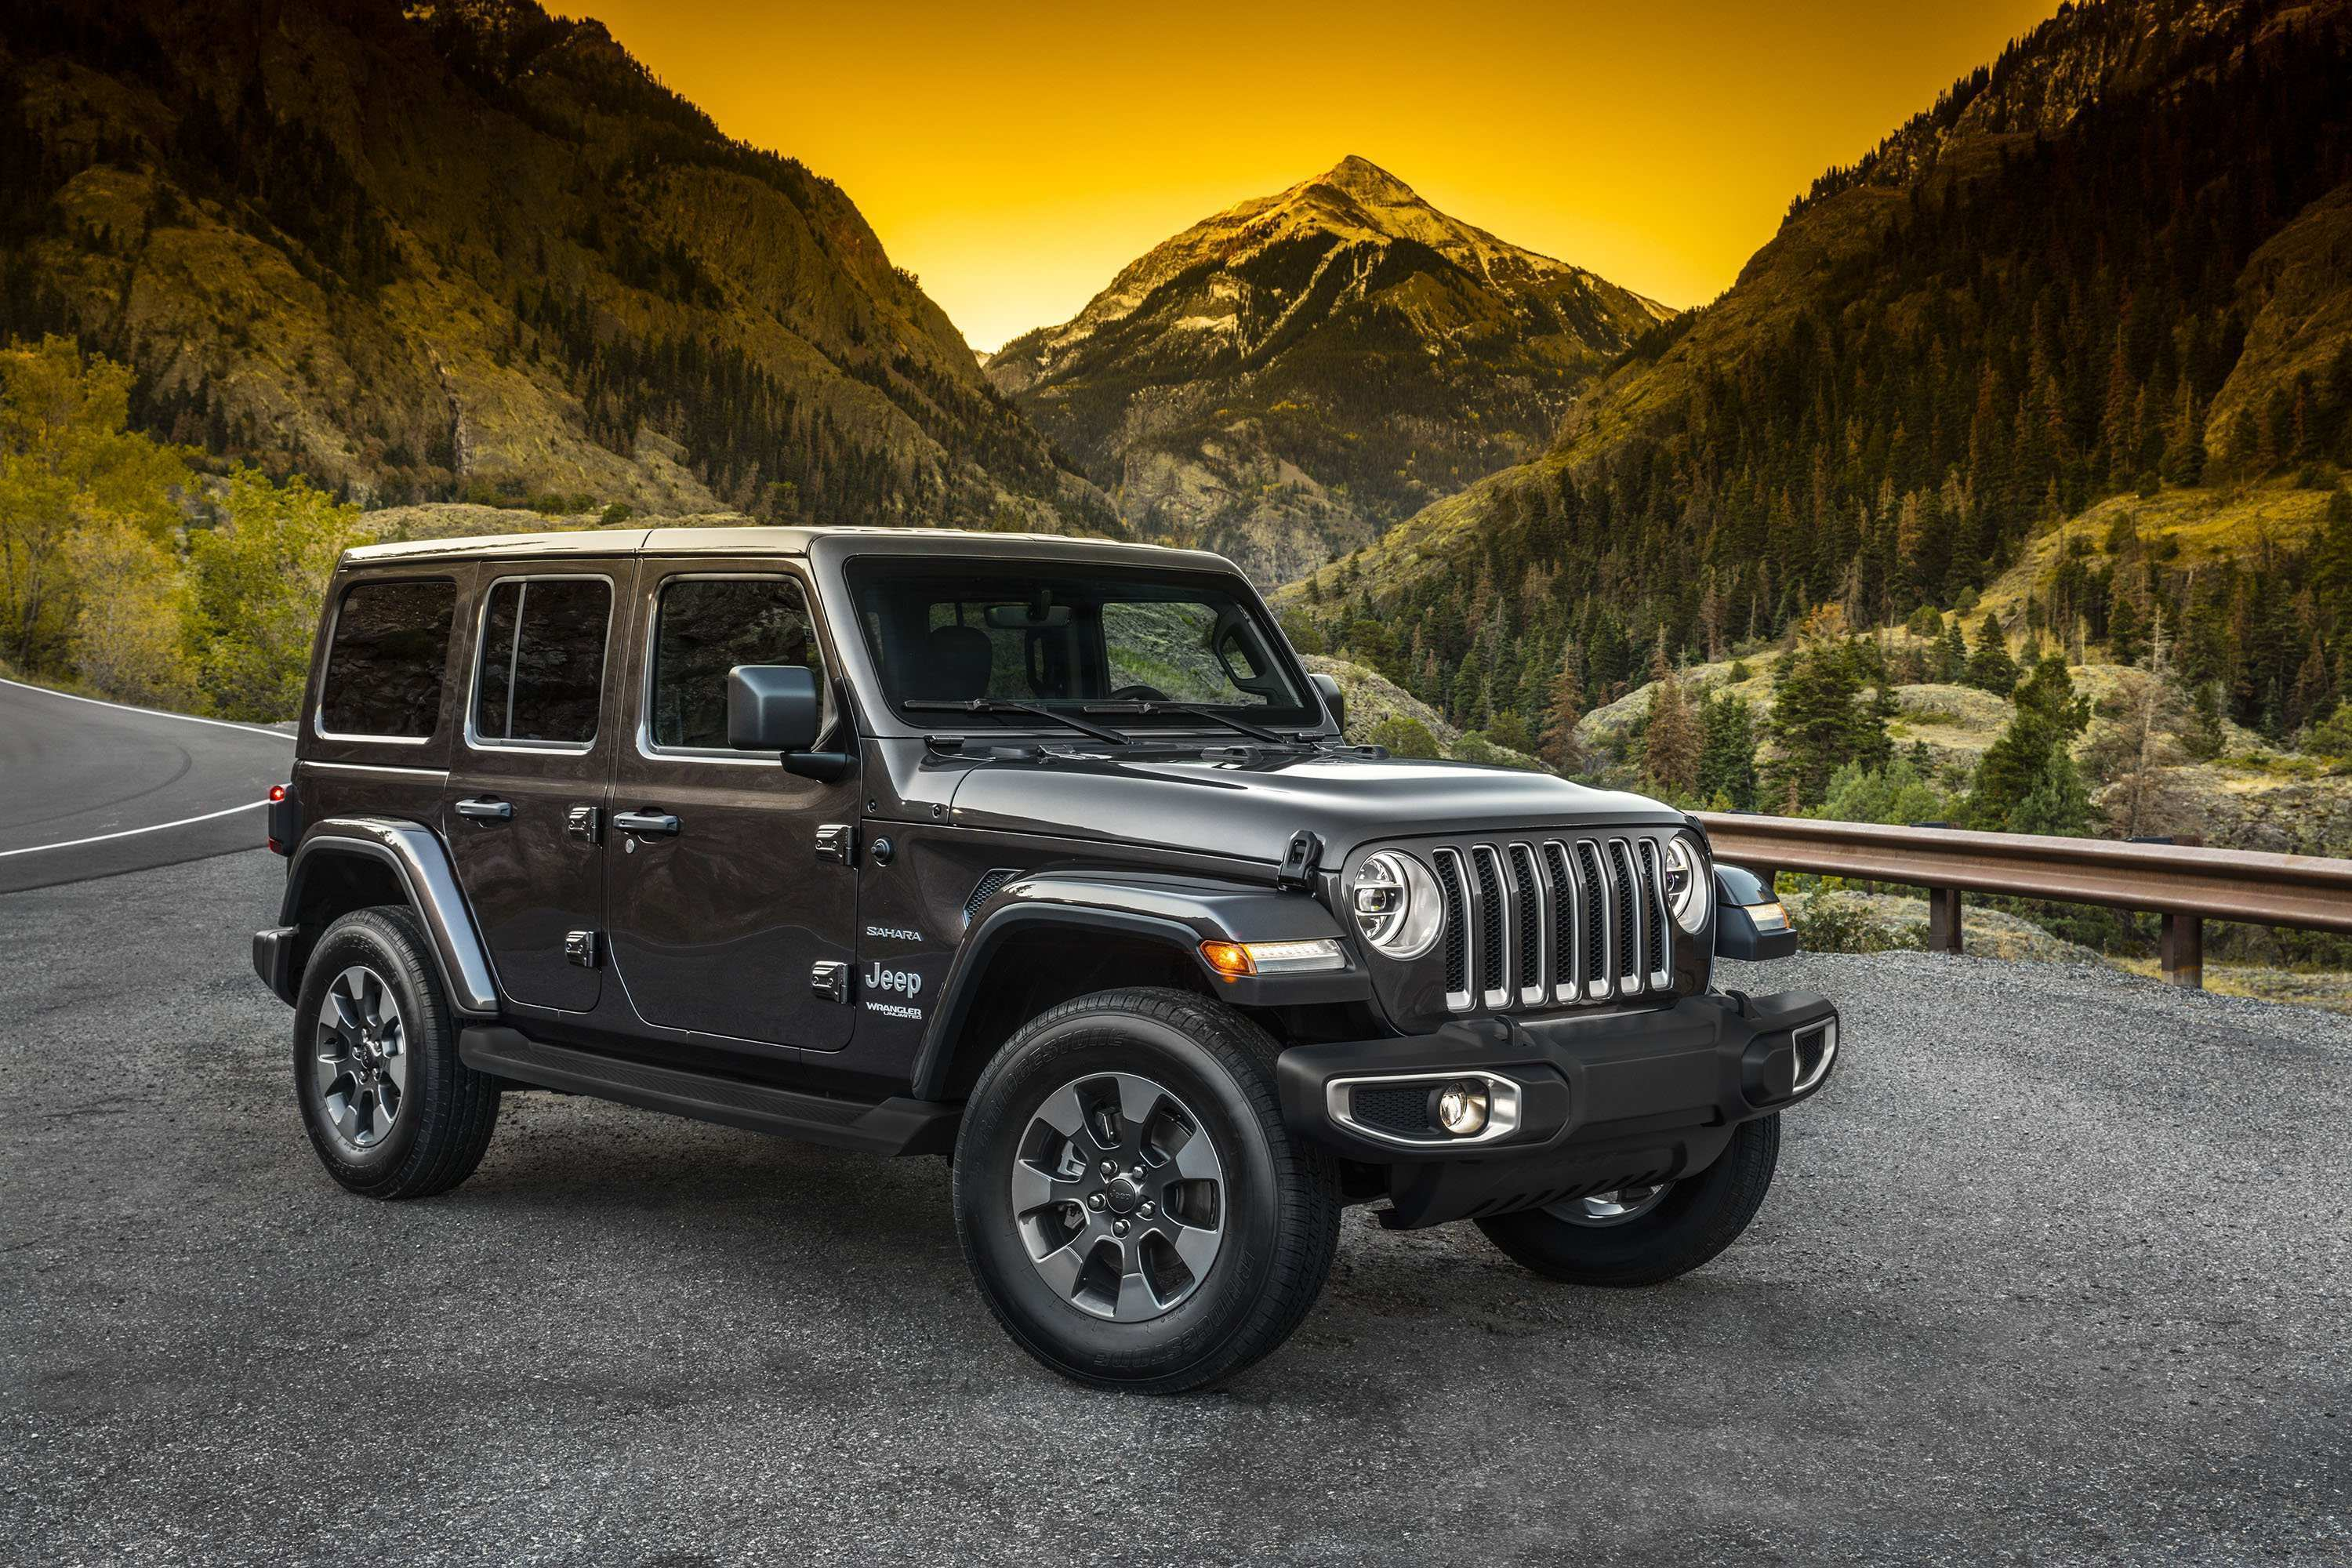 56 Great 2020 Jeep Wrangler Unlimited Engine with 2020 Jeep Wrangler Unlimited